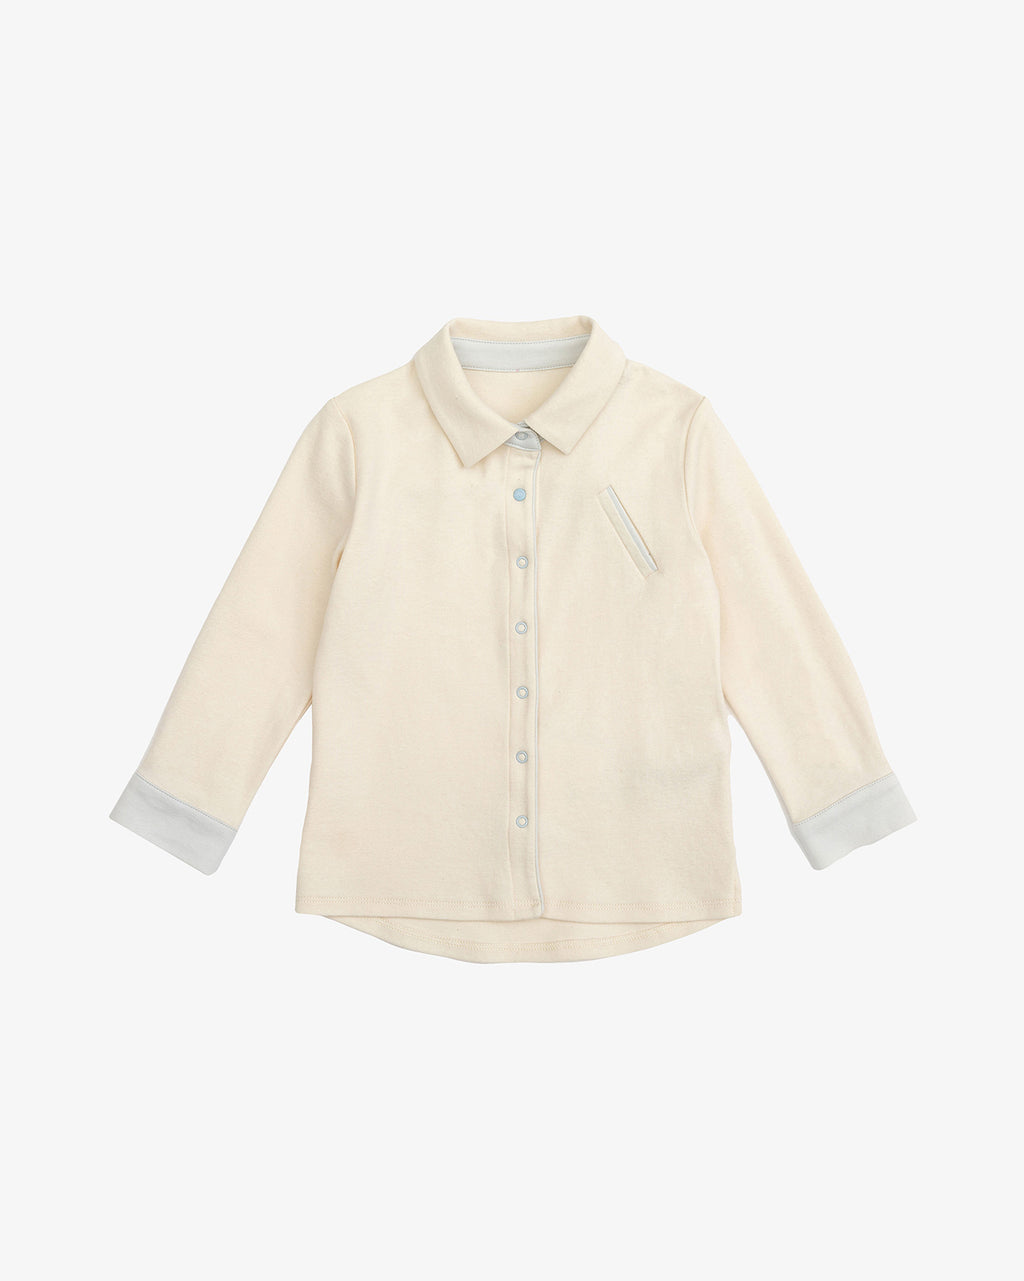 Natural Cotton - Gentle Boy Shirt with Contrasting Grey | Blara Organic House | Sustainable Fashion for Boys